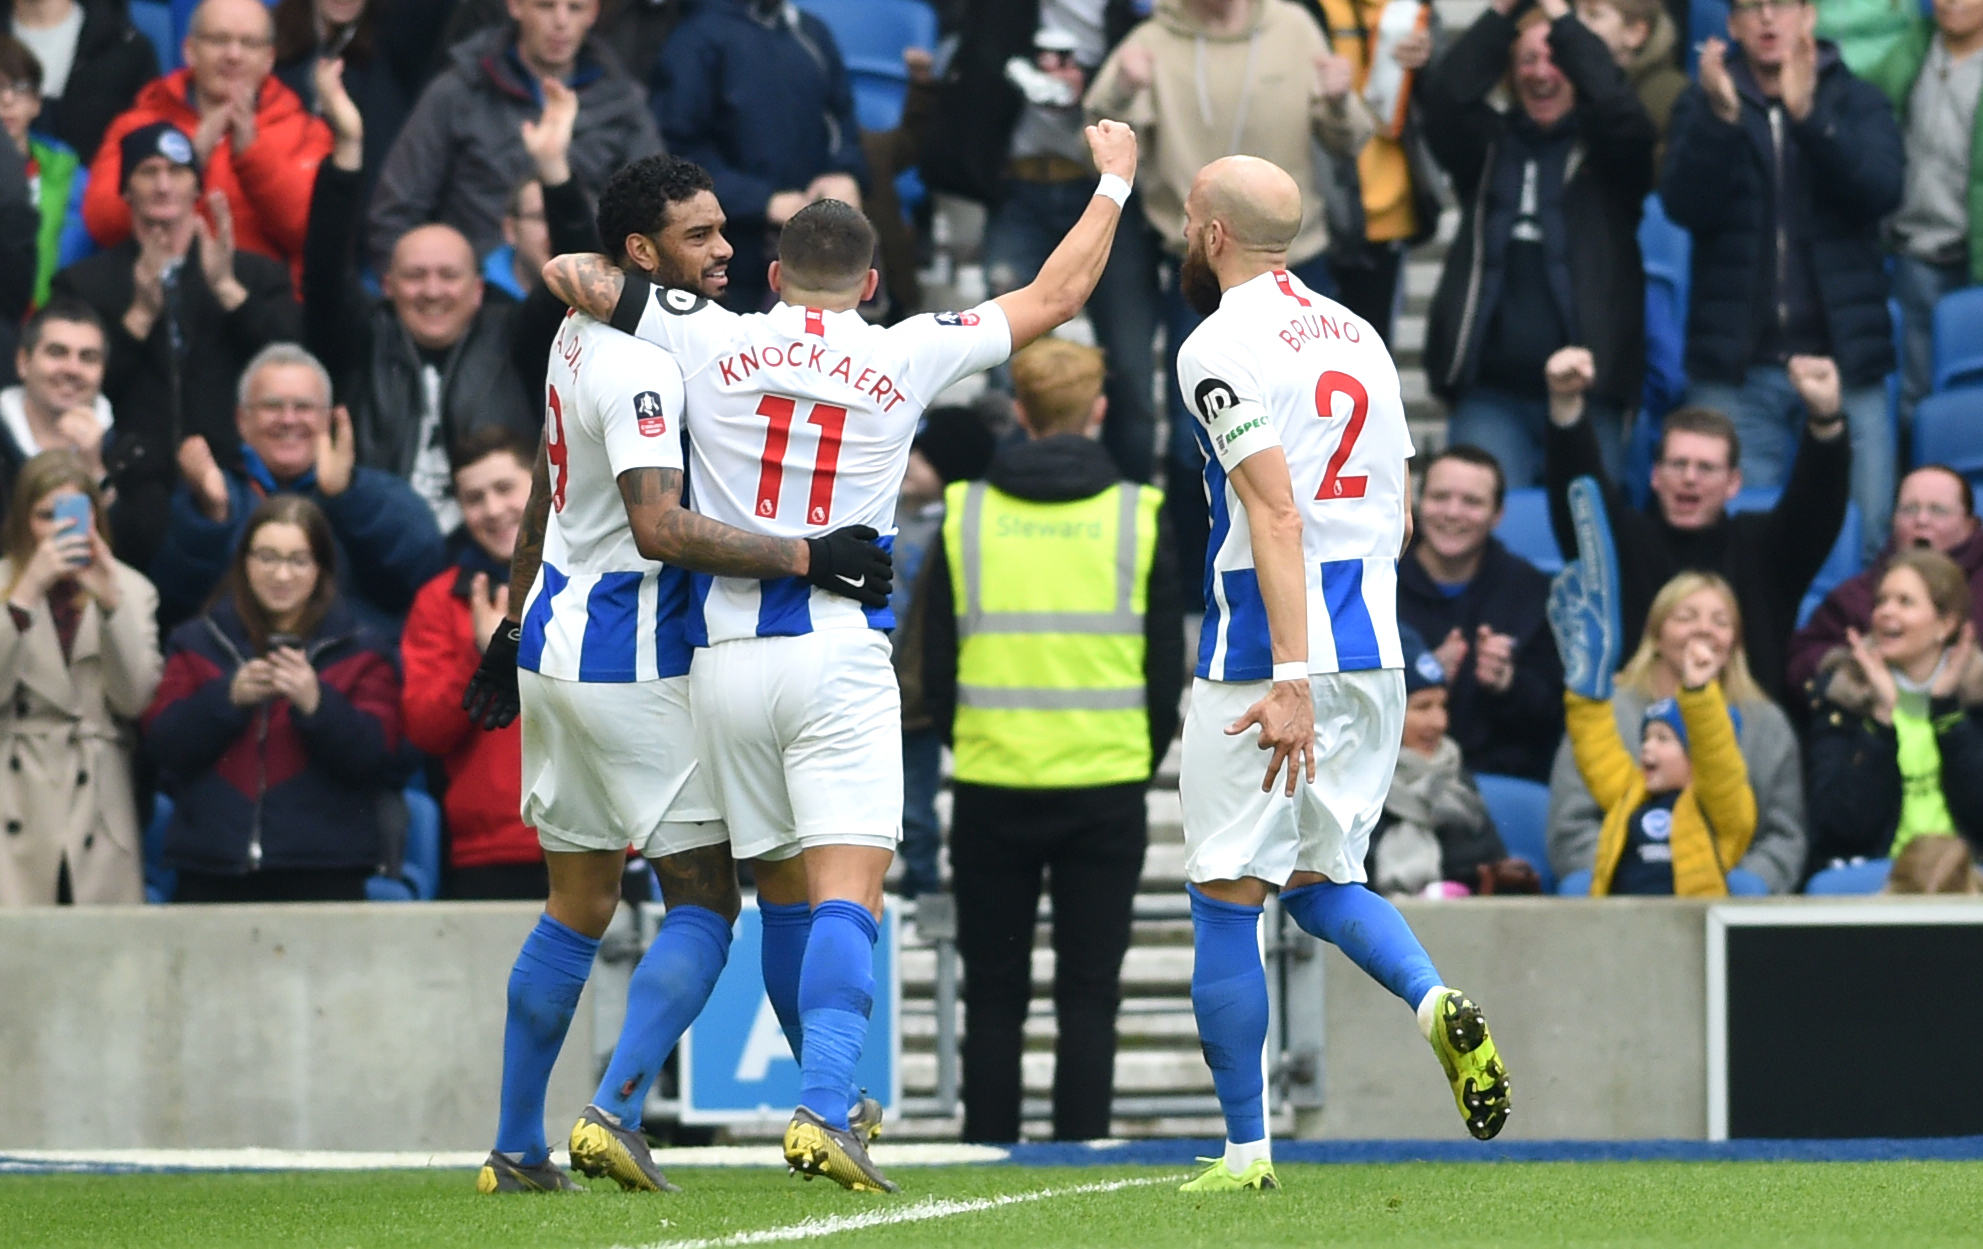 Striker shortage takes the gloss off Albion's FA Cup progress